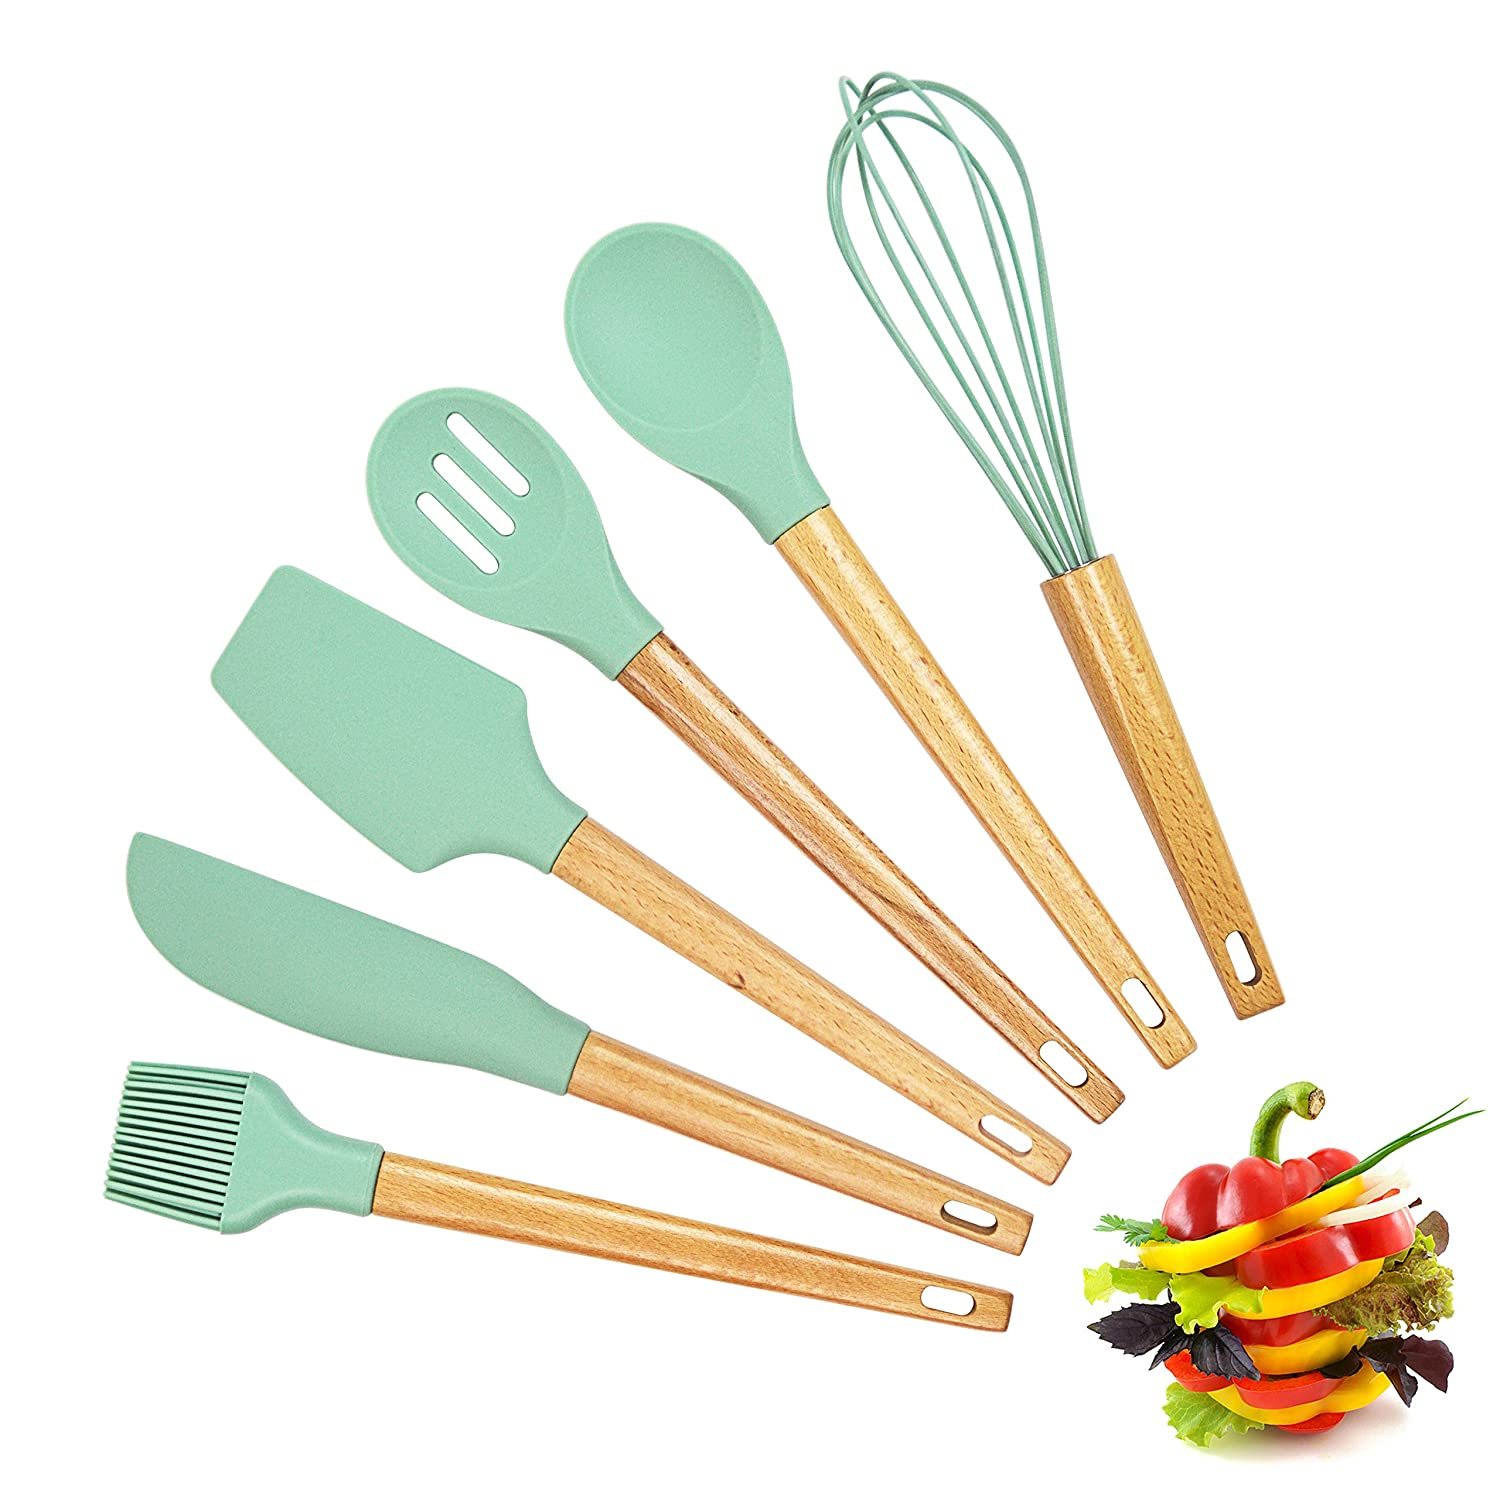 Premium Baking Utensils Cooking Tools and Baking Accessories Silicone Spatula Set with Wood Handle Hygienic Quality Spatula Set of 6 Pieces Including Egg Whisk and Basting Brush XTRA Shop